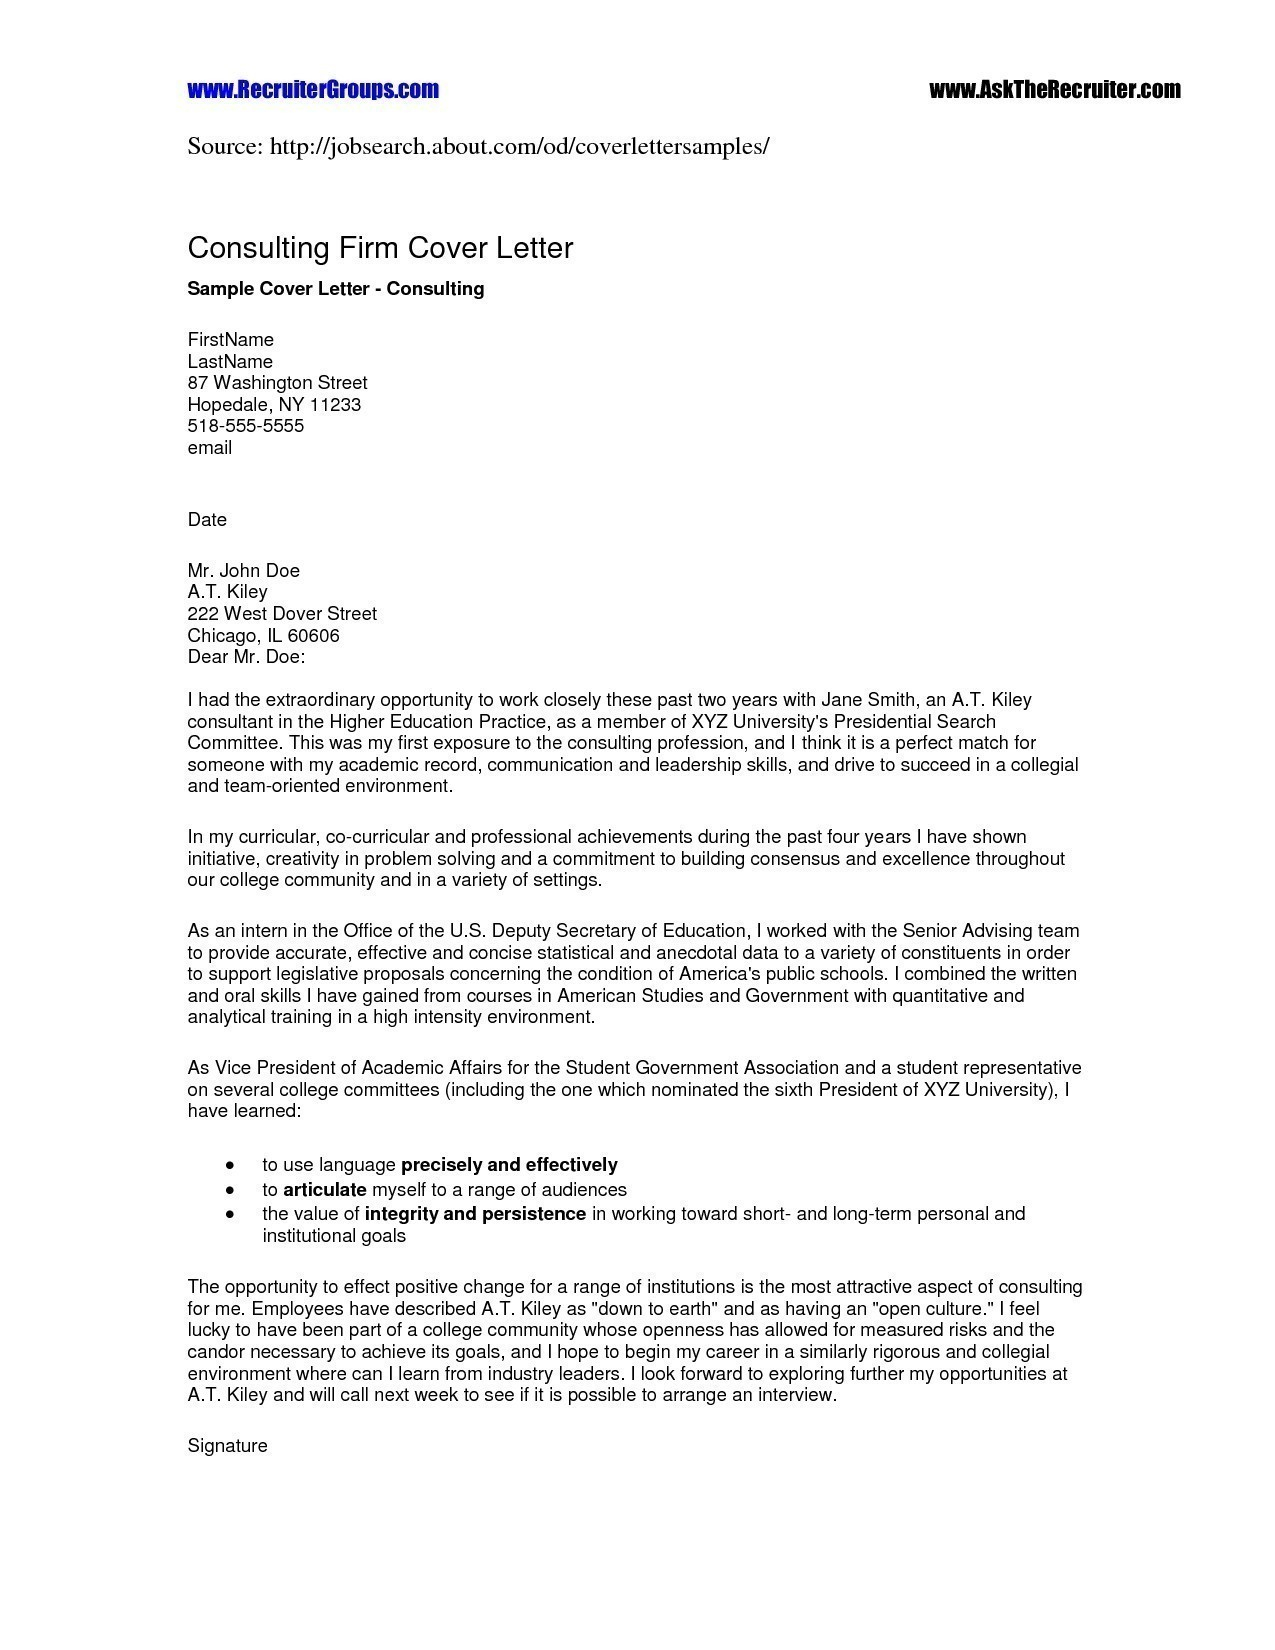 Job Offer Proposal Letter Template - How to Write Job Fer Letter Fresh Job Fer Letter Sample Best Job